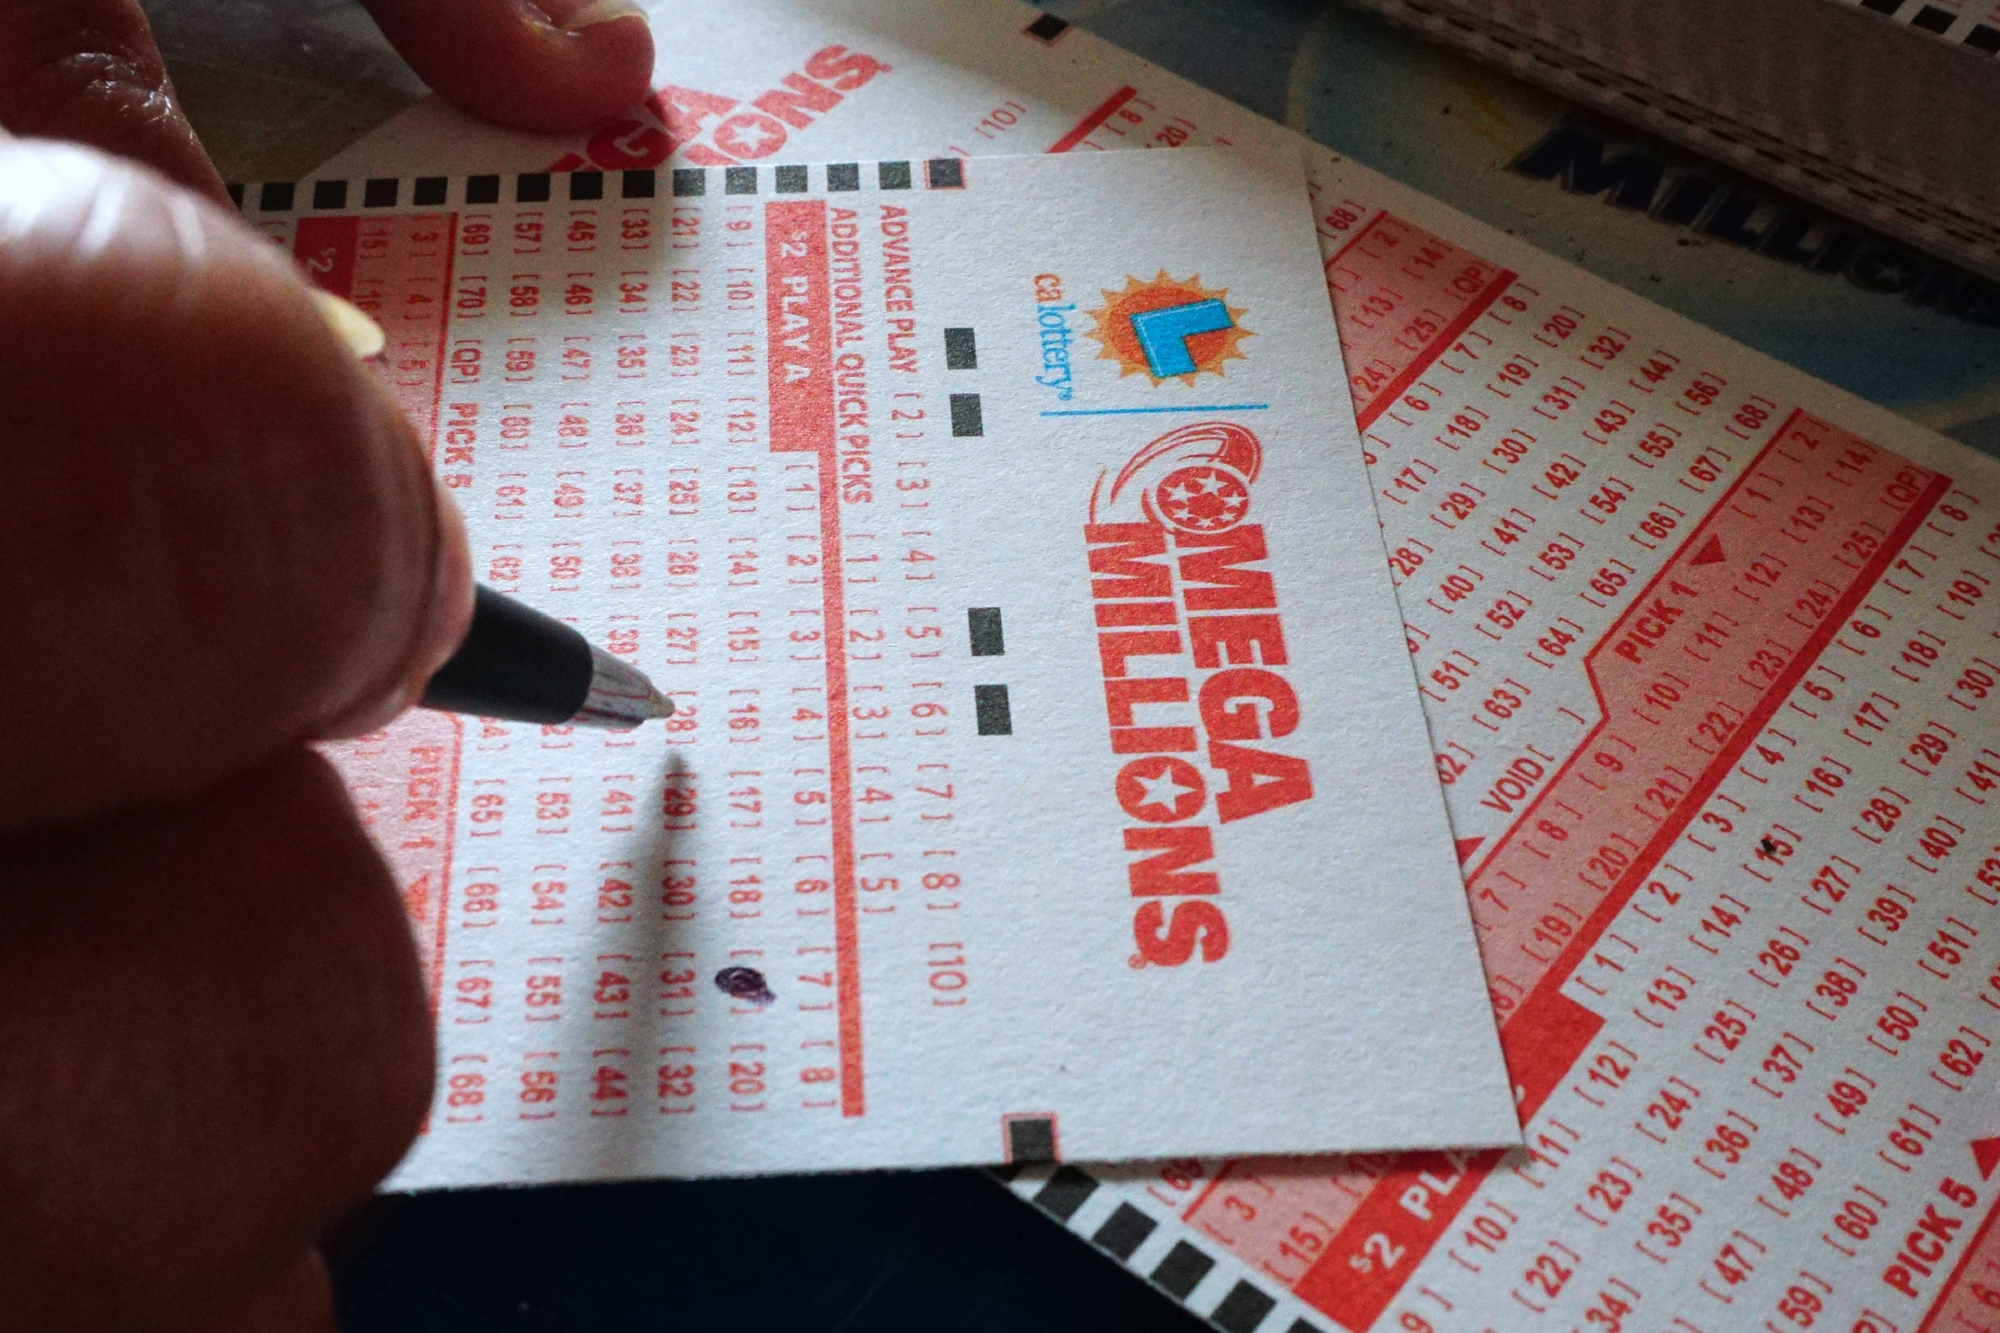 6am News – United States: Lucky Mystery Won $ 731 Million in Lotto